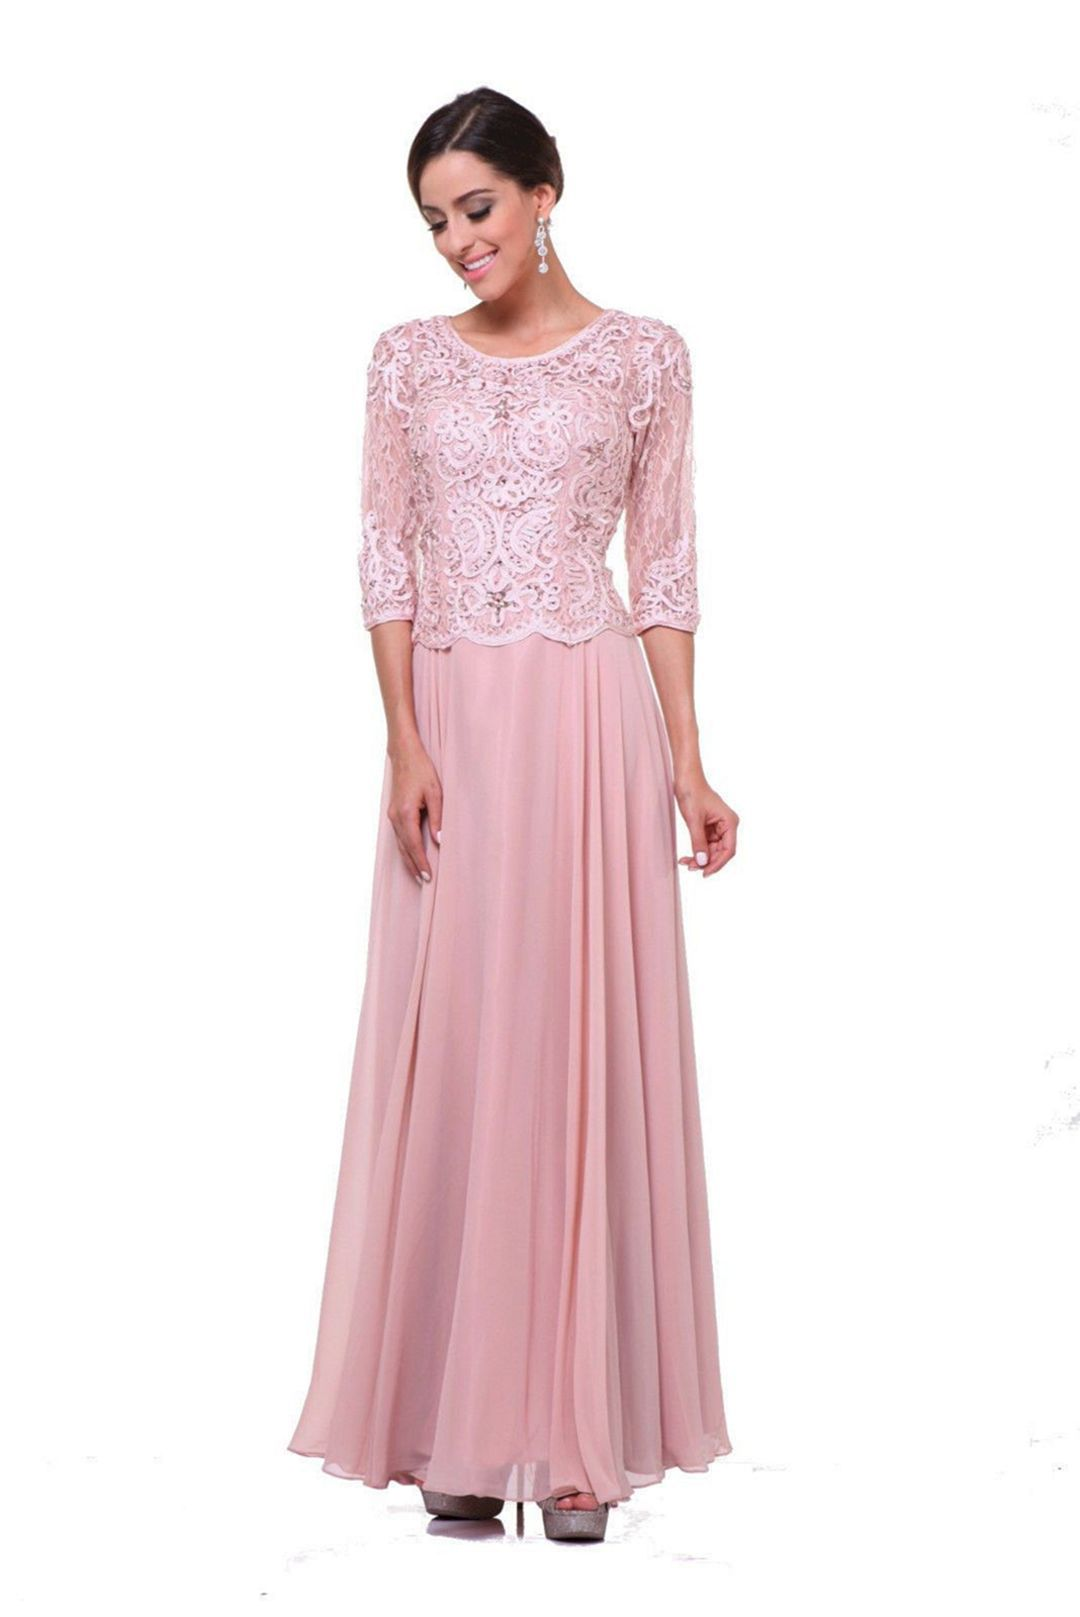 Sophisticated Mother of the Bride Dresses 8 | Pinterest